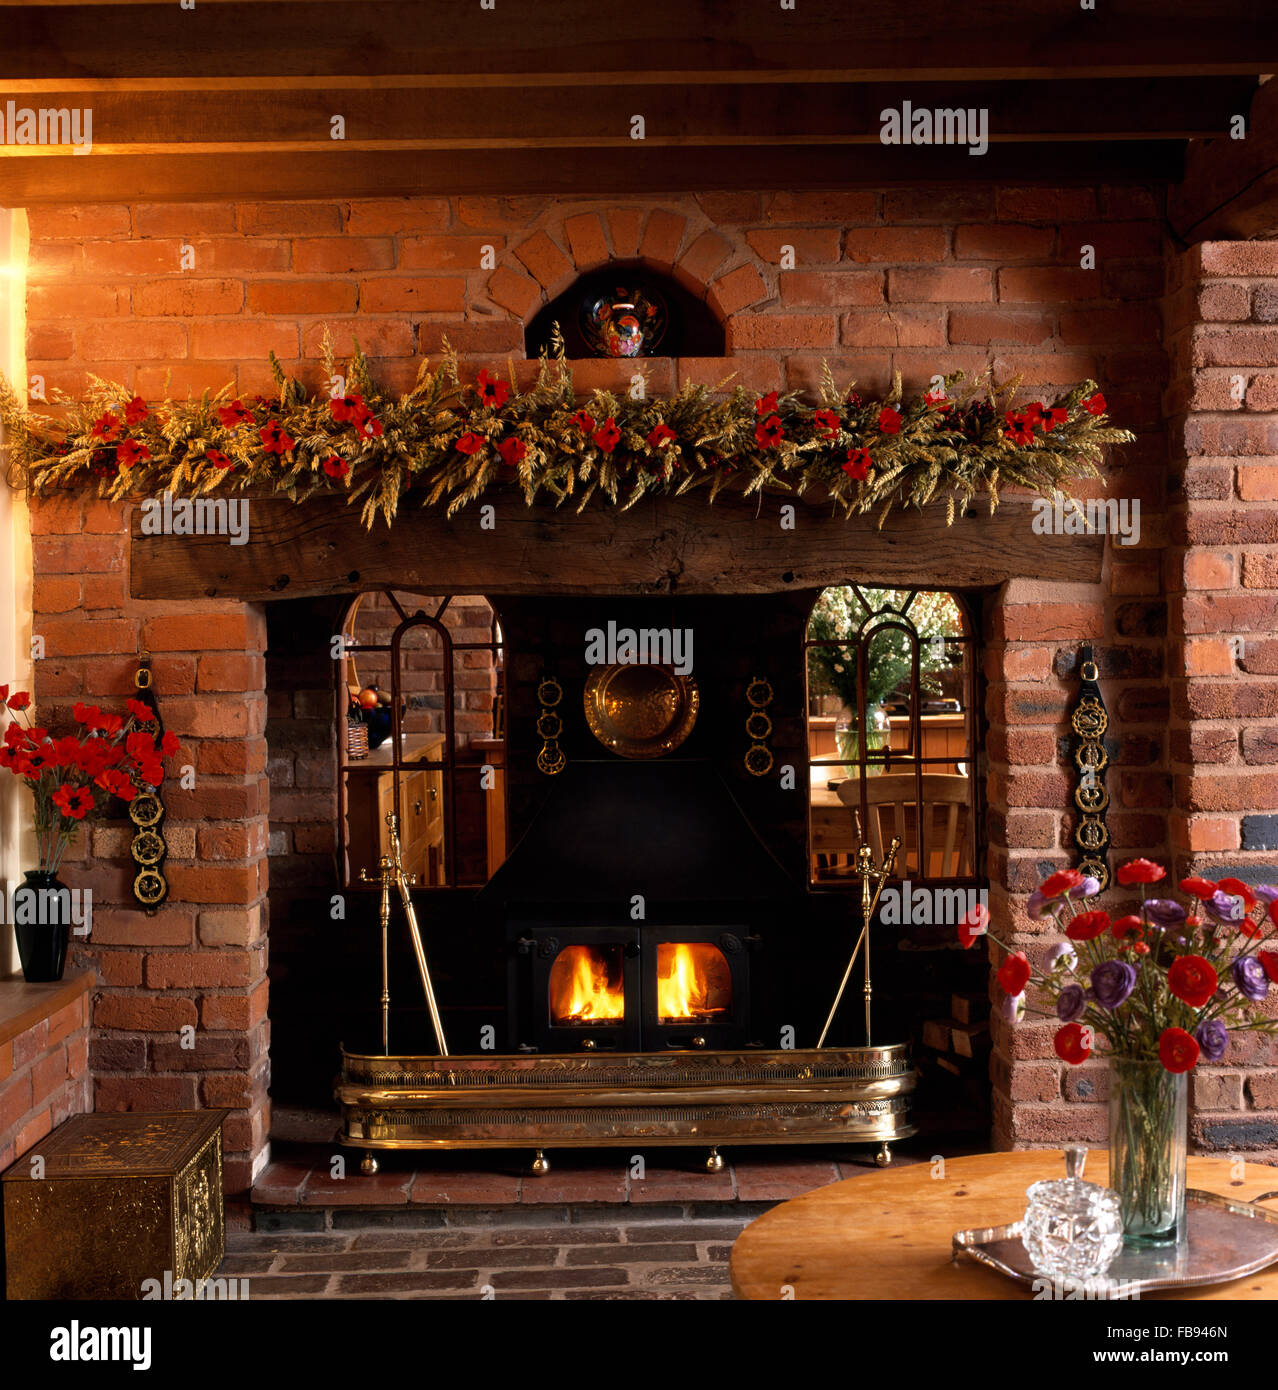 Arched interior windows either side of wood burning stove with a brass fender in fireplace with dried flower garland - Stock Image